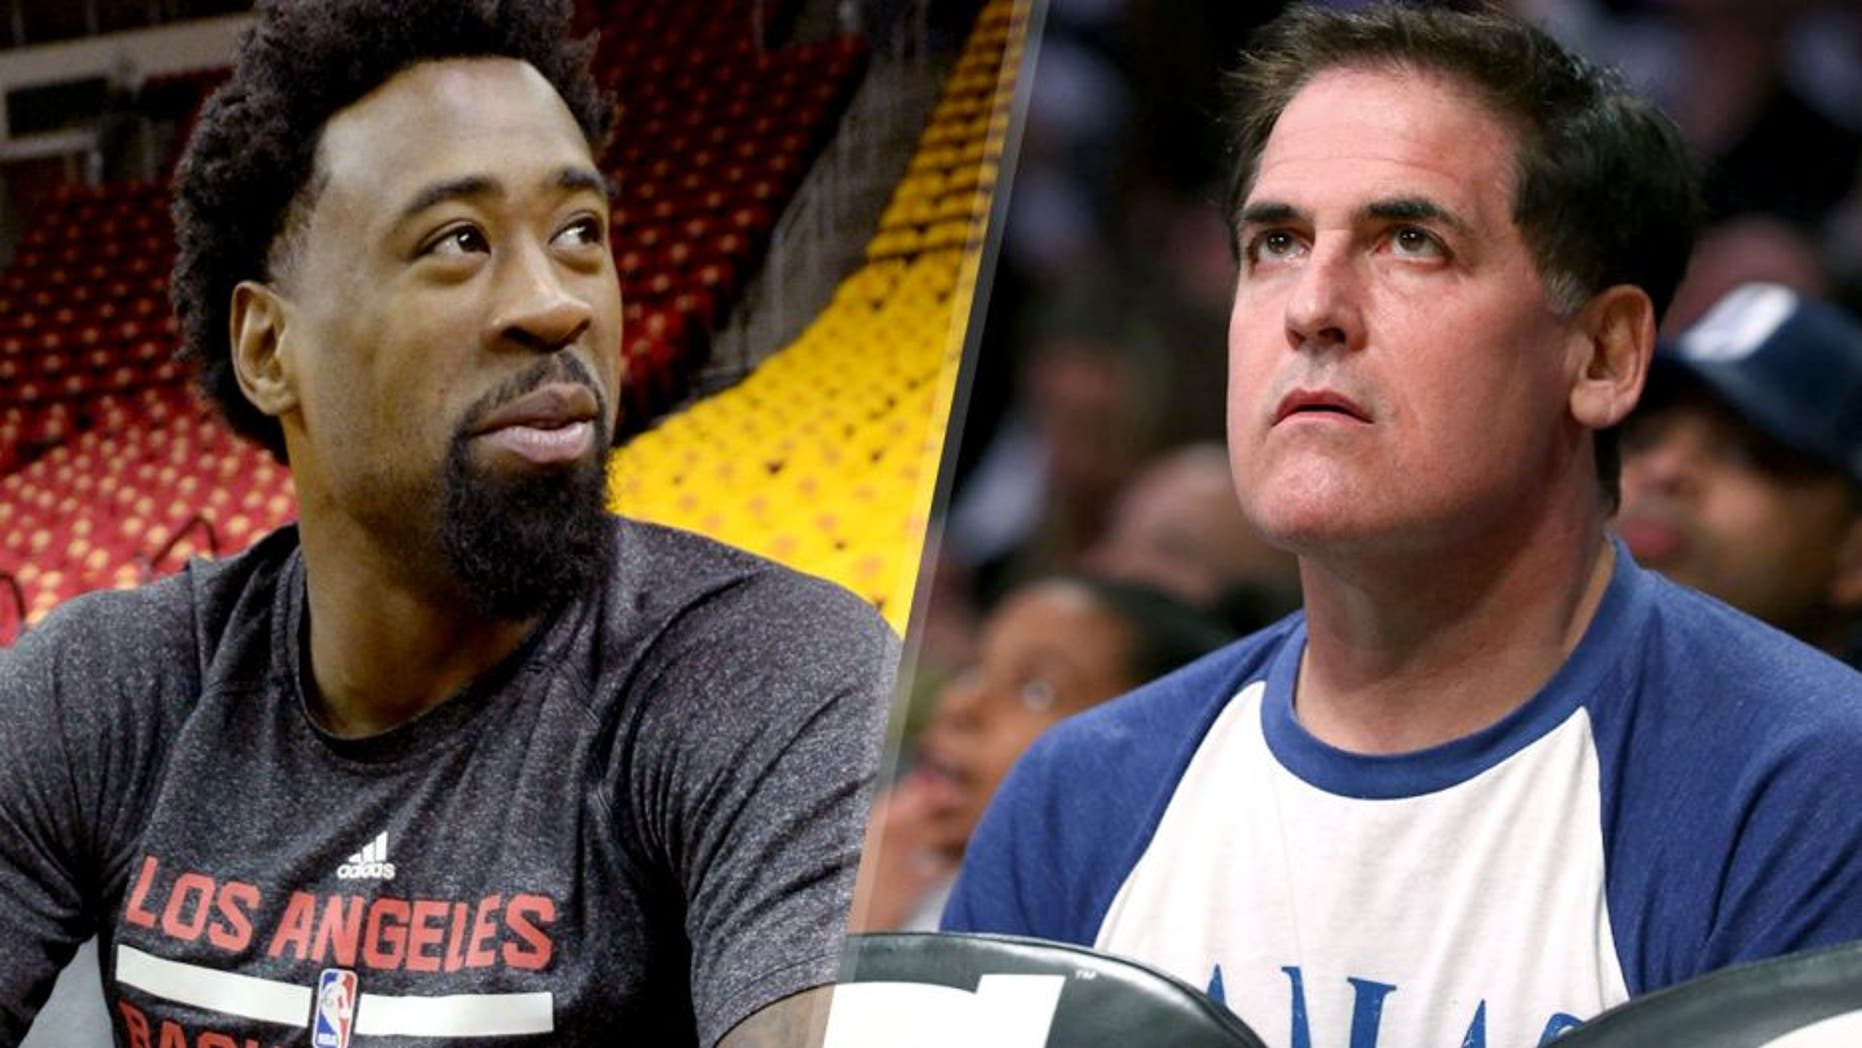 HOUSTON, TX - MAY 12: DeAndre Jordan #6 of the Los Angeles Clippers at the morning shoot around before a game against the Houston Rockets in Game Five of the Western Conference Semifinals during the 2015 NBA Playoffs on May 12, 2015 at the Toyota Center in Houston, Texas. NOTE TO USER: User expressly acknowledges and agrees that, by downloading and or using this photograph, User is consenting to the terms and conditions of the Getty Images License Agreement. Mandatory Copyright Notice: Copyright 2015 NBAE (Photo by Andrew D. Bernstein/NBAE via Getty Images) LOS ANGELES, CA - MARCH 08: Owner Mark Cuban of the Dallas Mavericks attends the NBA game between the Dallas Mavericks and the Los Angeles Lakers at Staples Center on March 8, 2015 in Los Angeles, California. The Mavericks defeated the Lakers 100-93. NOTE TO USER: User expressly acknowledges and agrees that, by downloading and/or using this photograph, user is consenting to the terms and conditions of the Getty Images License Agreement. (Photo by Victor Decolongon/Getty Images)